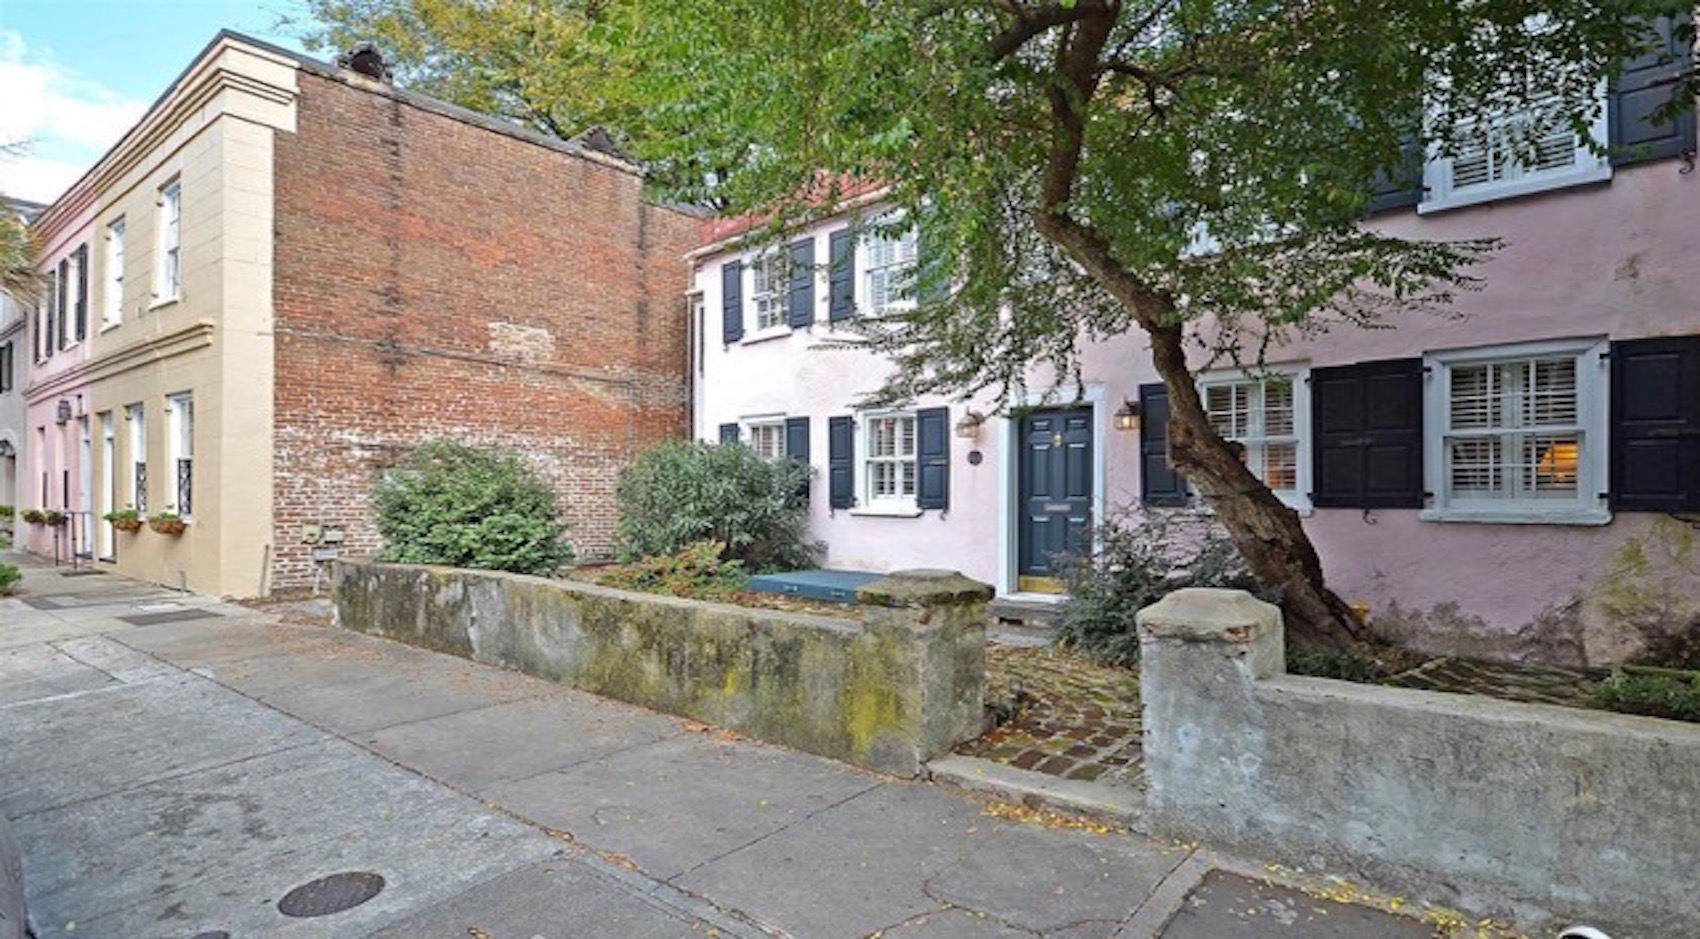 Tremendous Living In Charleston Sc The Allure Of A Historic Carriage House Download Free Architecture Designs Itiscsunscenecom